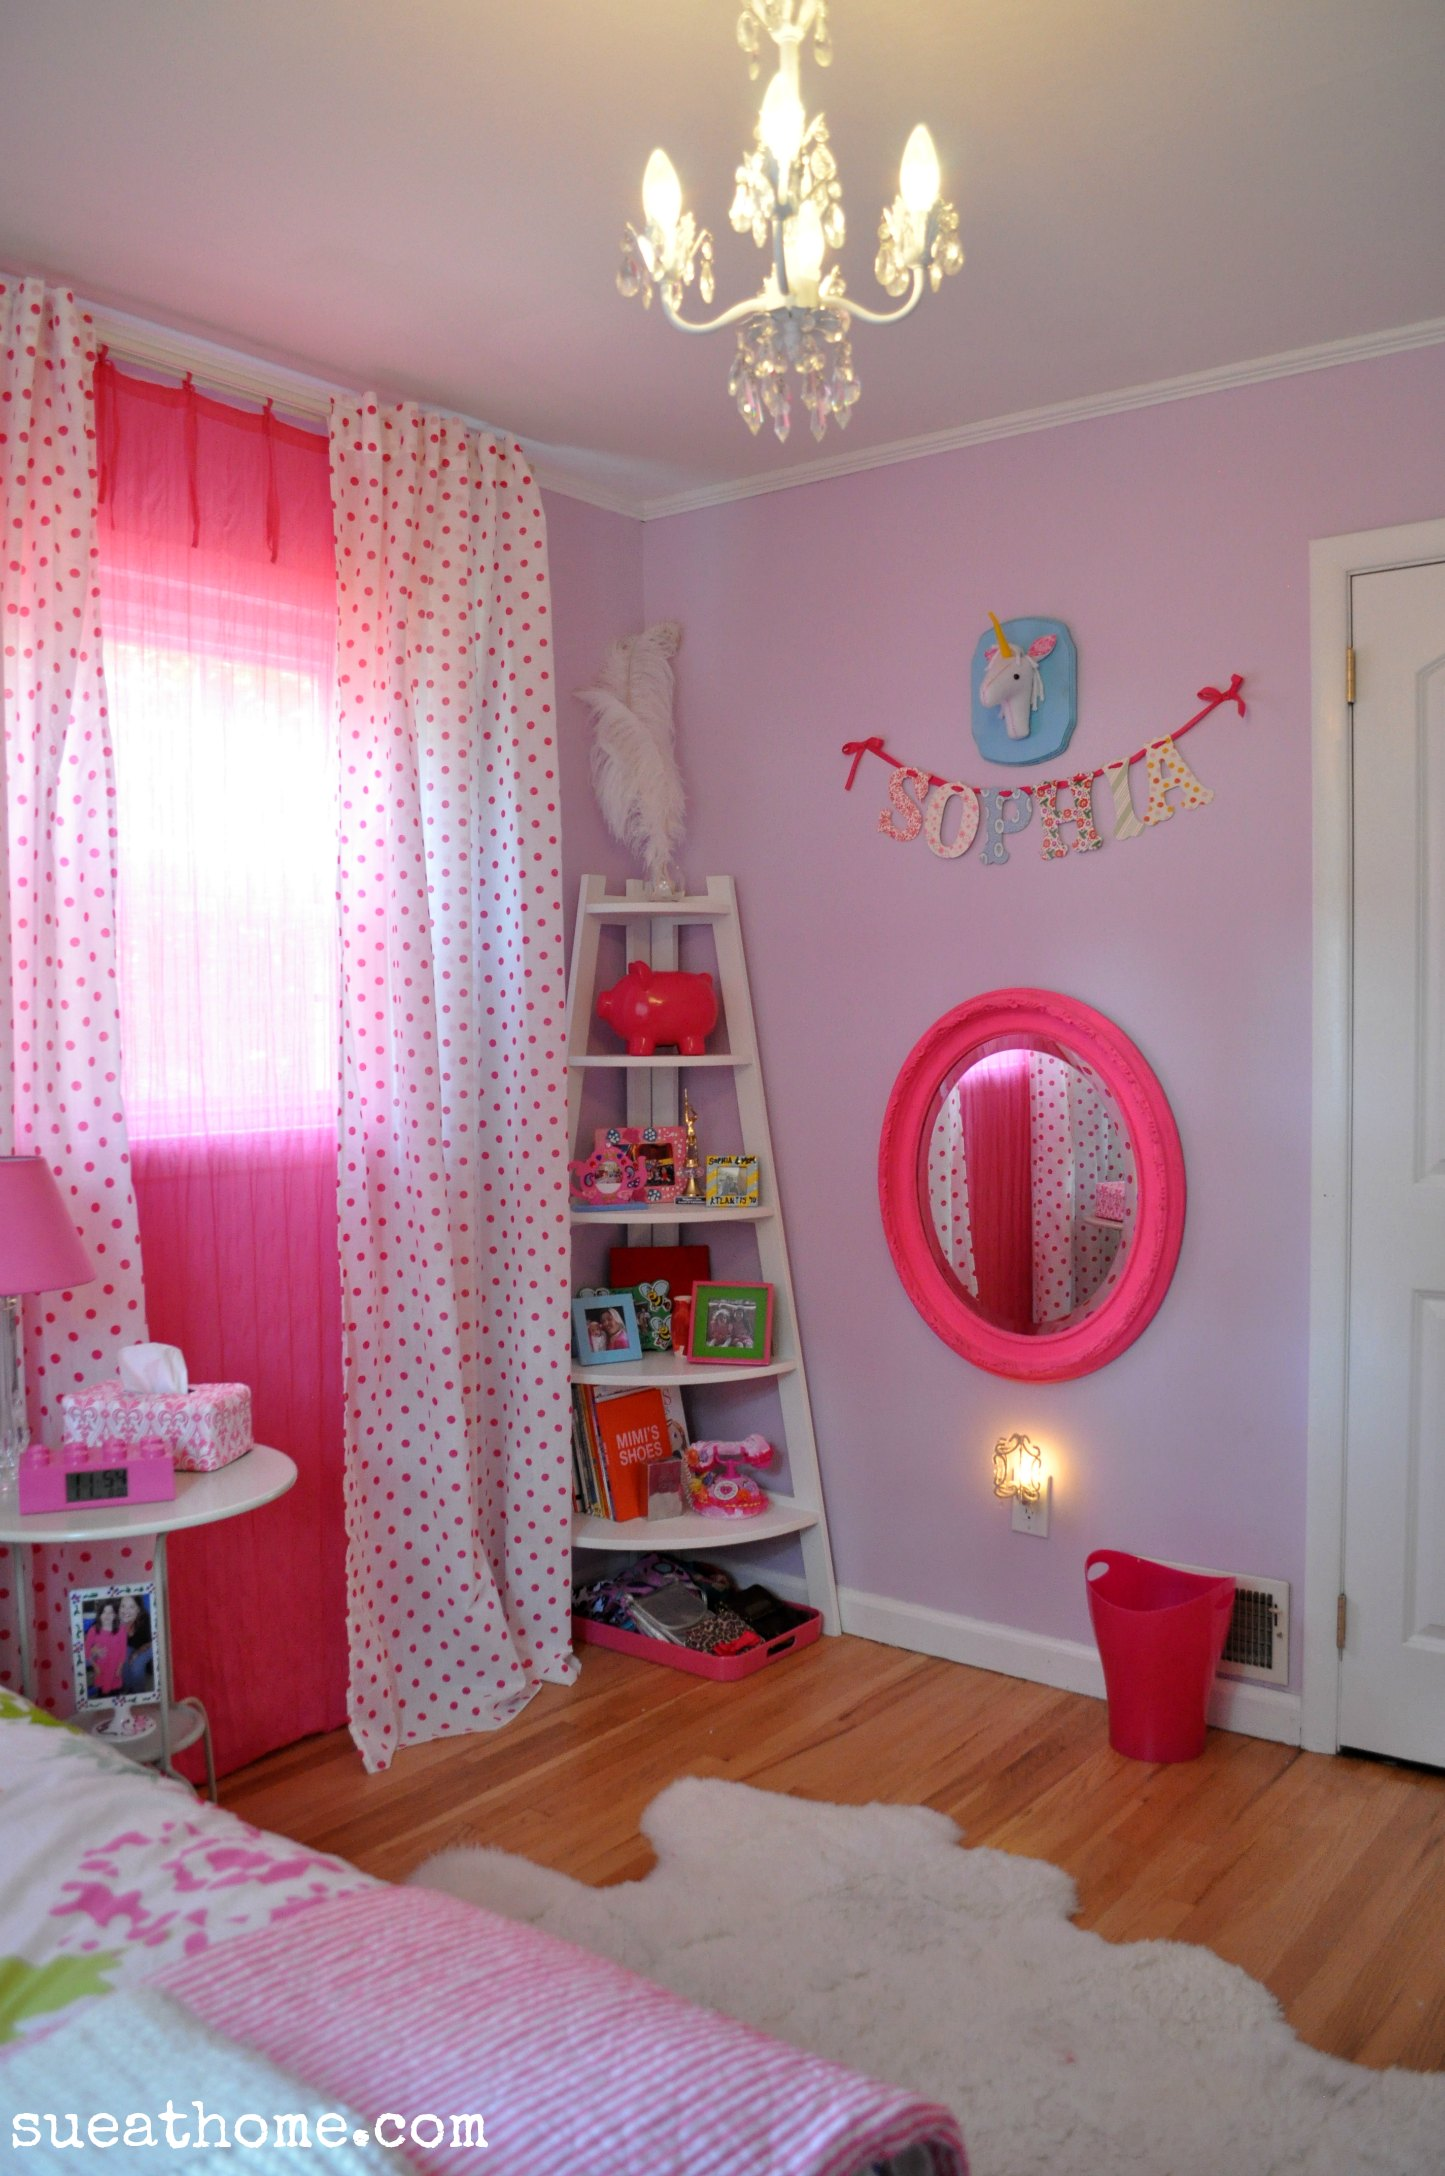 Room For Girls Design: Bright Girls Room